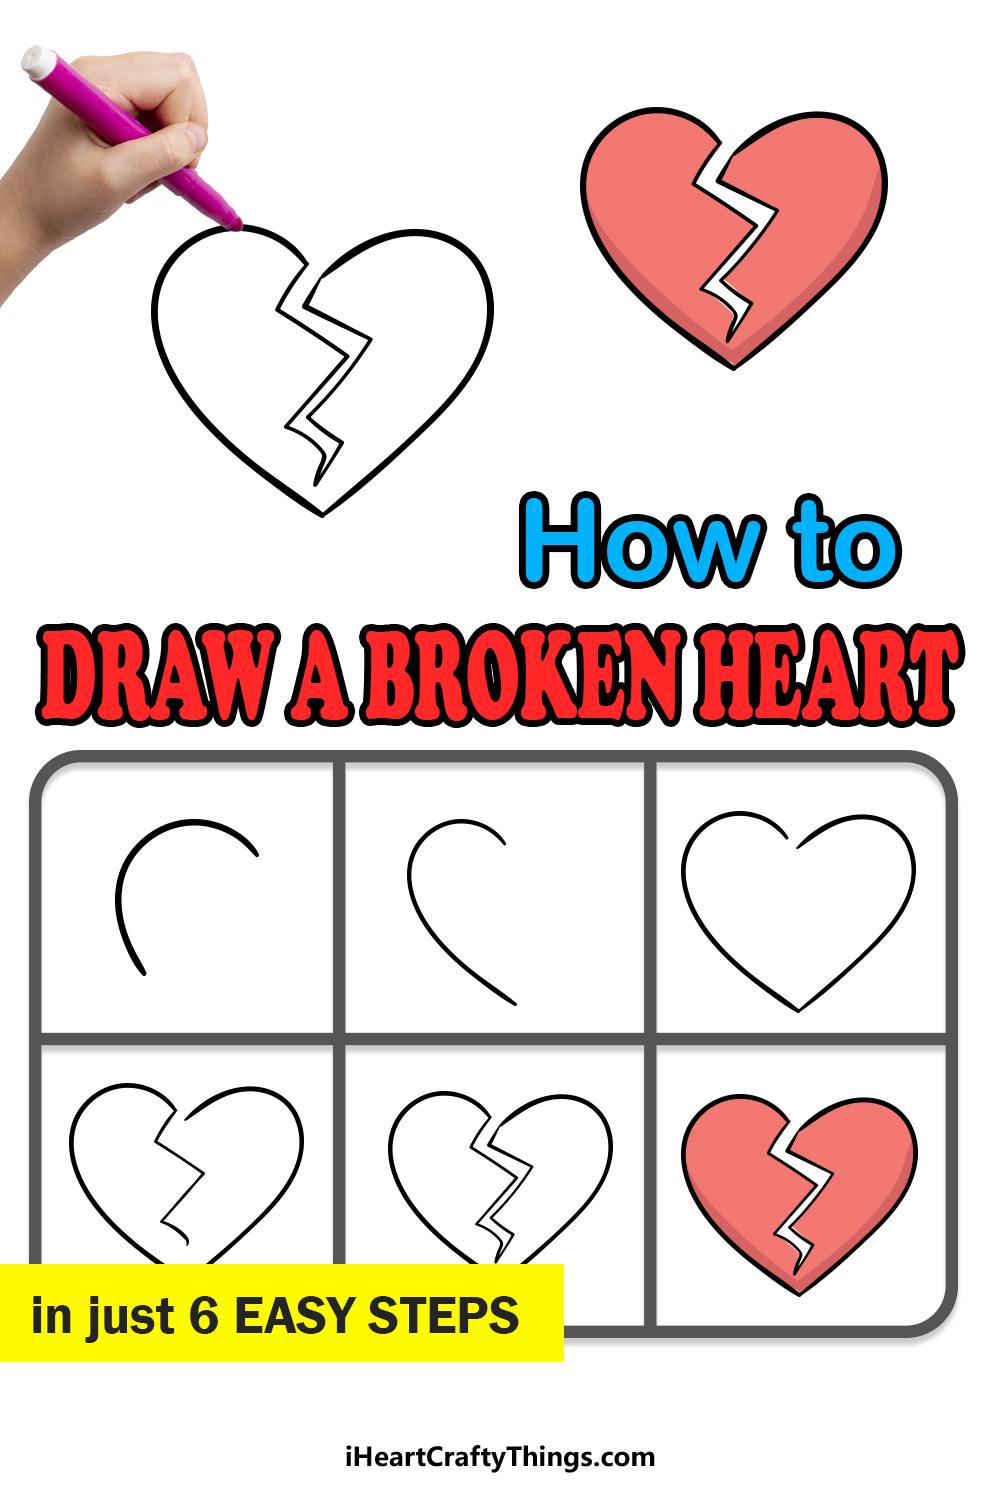 how to draw a broken heart in 6 easy steps